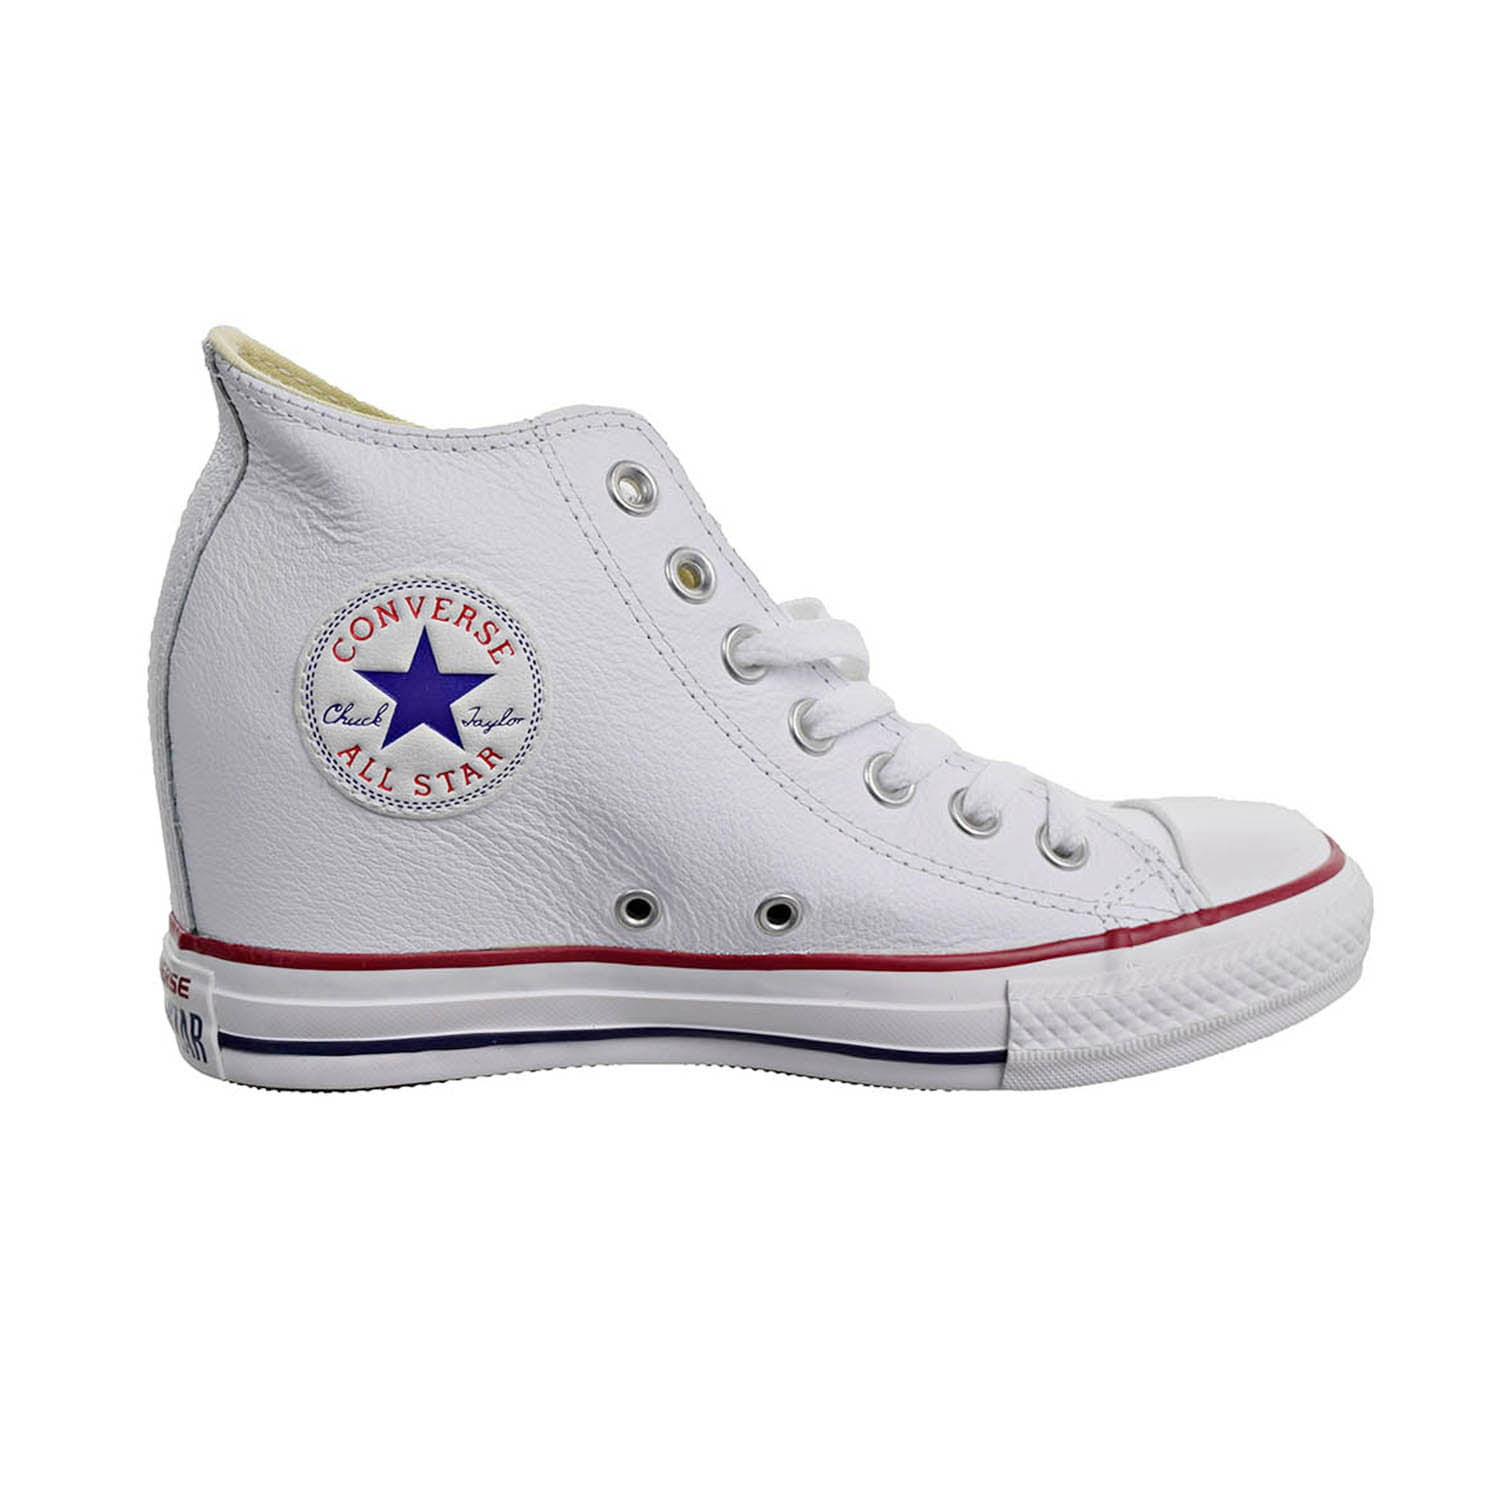 Converse Chuck Taylor Lux Wedge Mid Women's Shoes White/Red/Blue 547200f